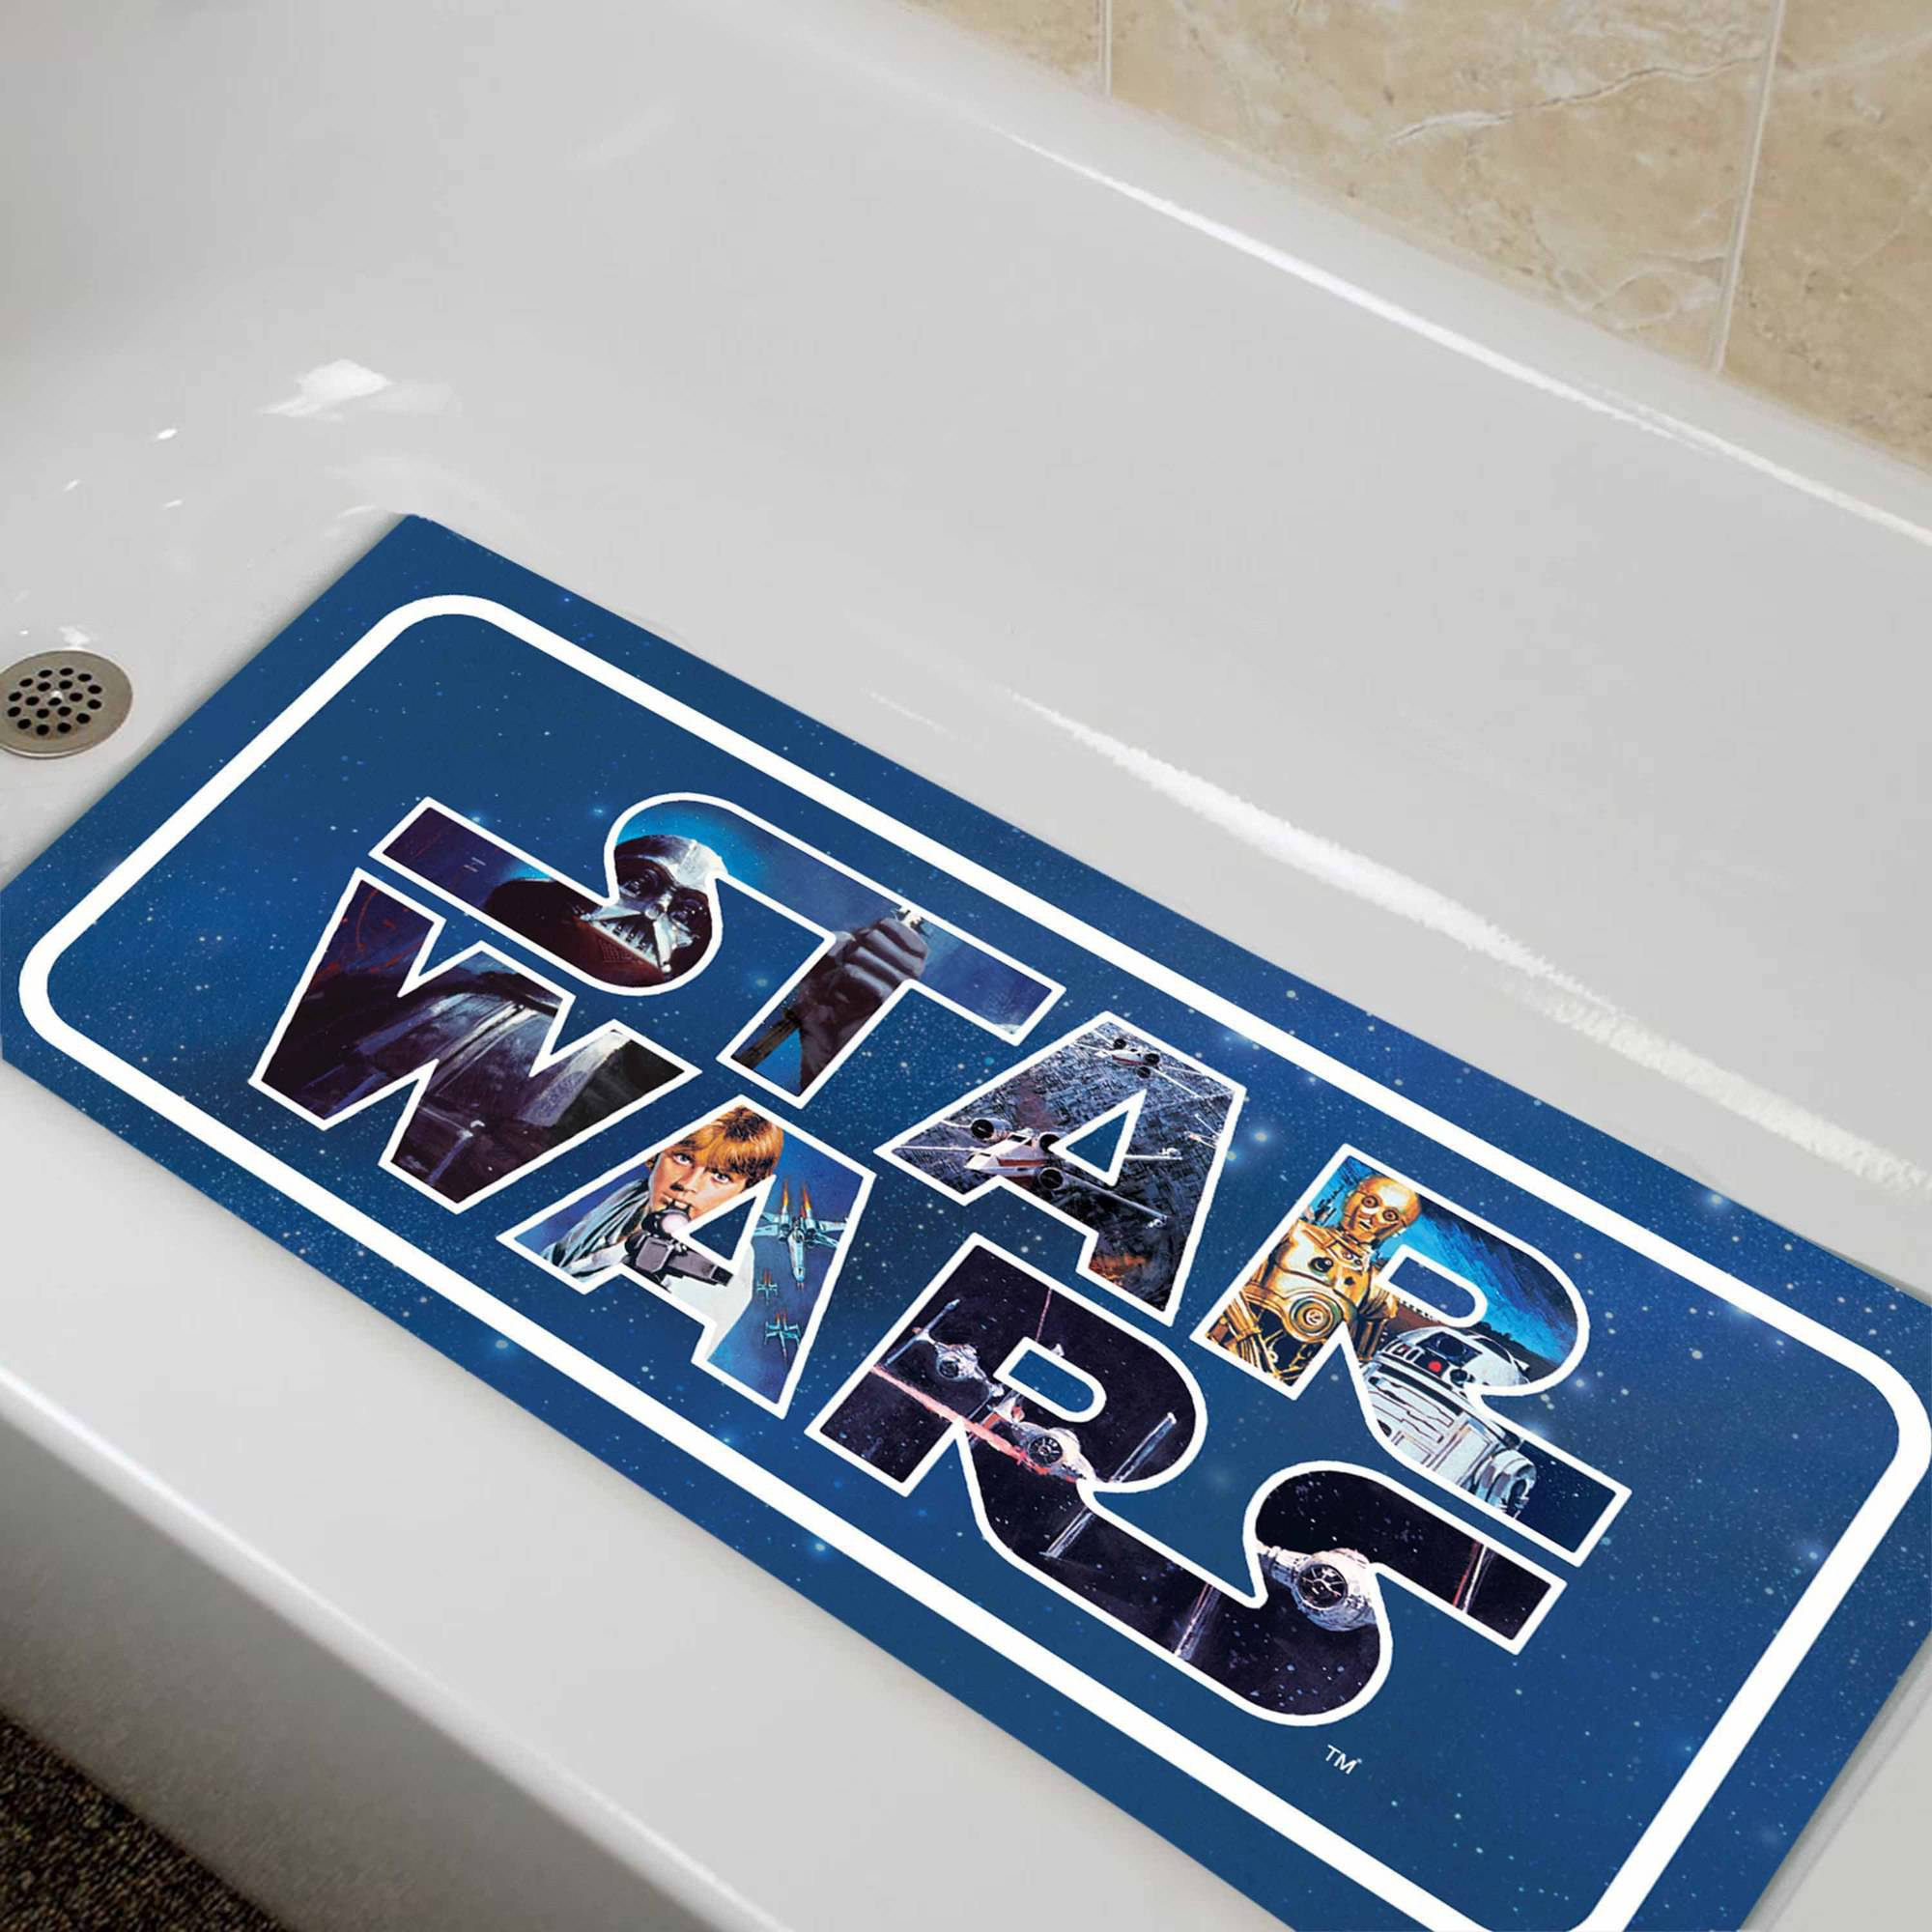 backgrounds star wars bathroom decor for decor desktop hd pics tub mat